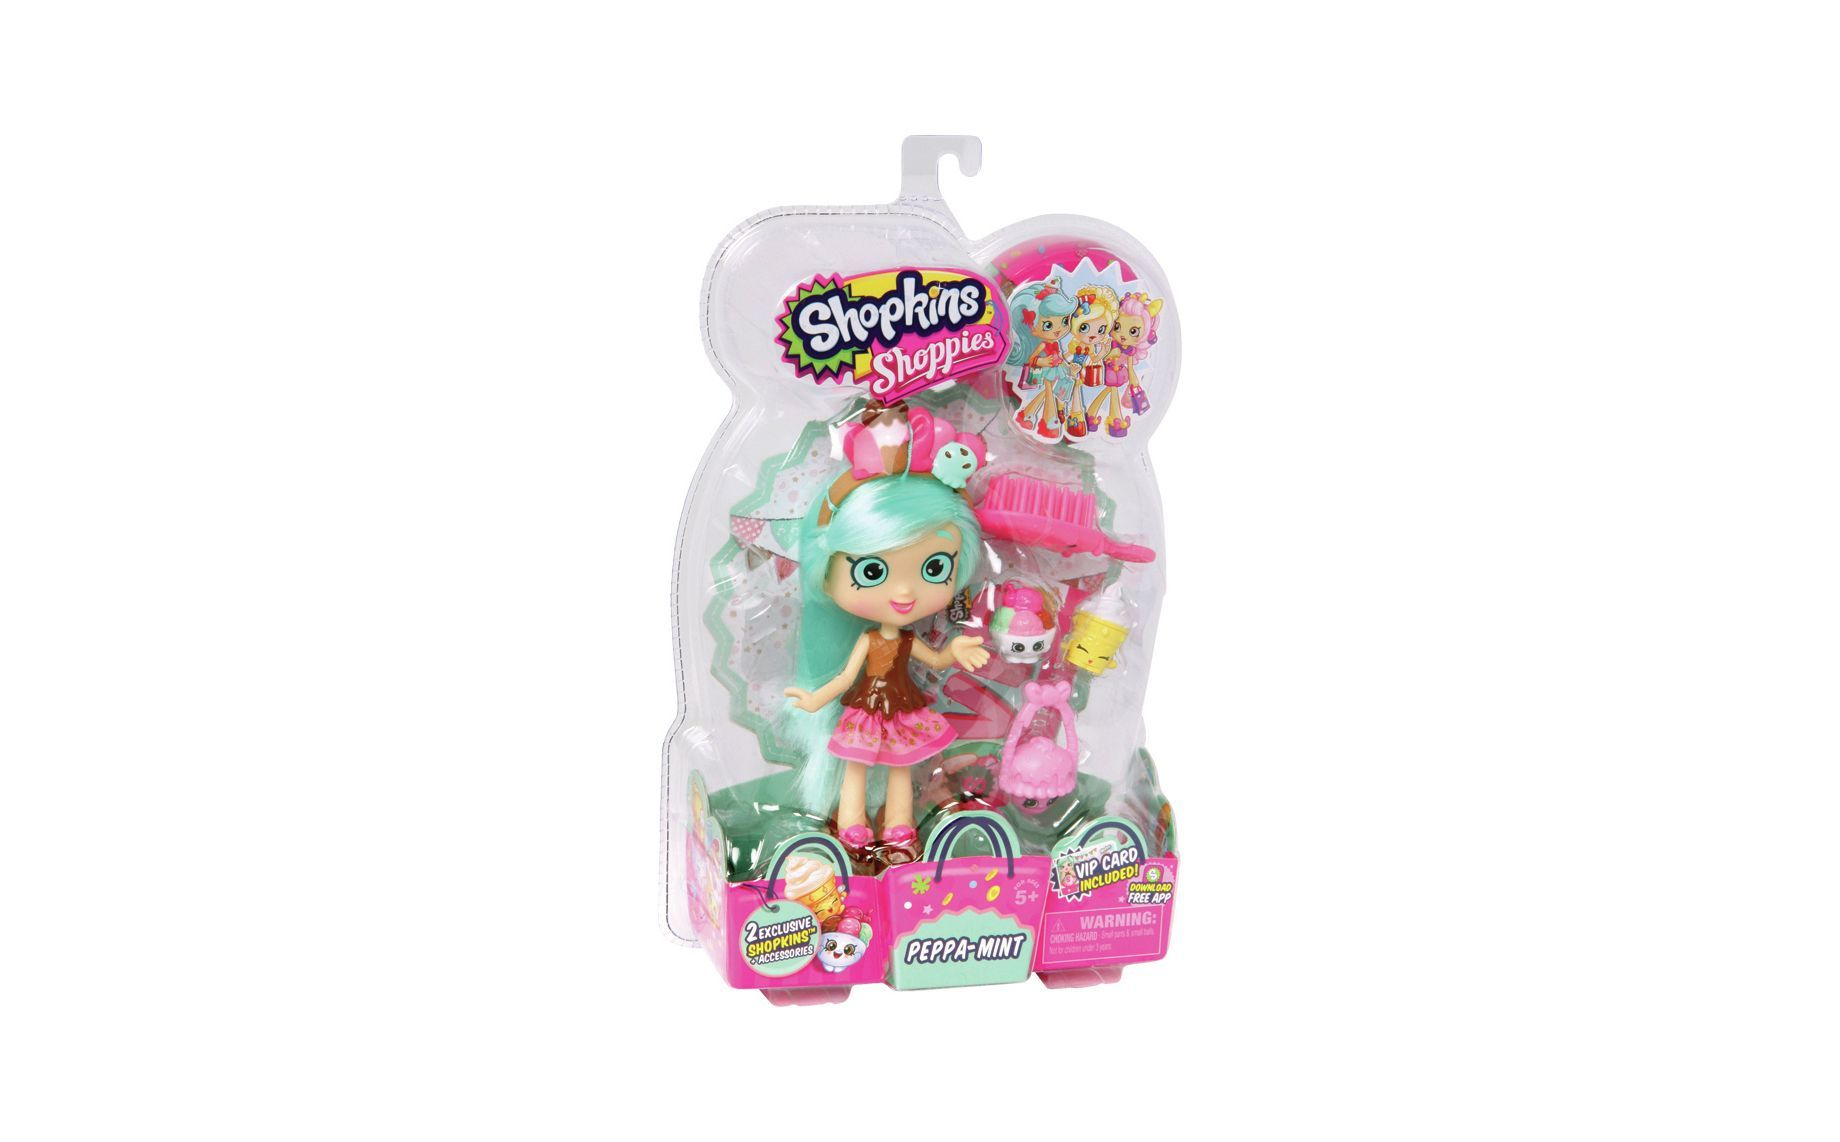 Buy Shopkins Shoppies Peppermint Doll Playset at Argos